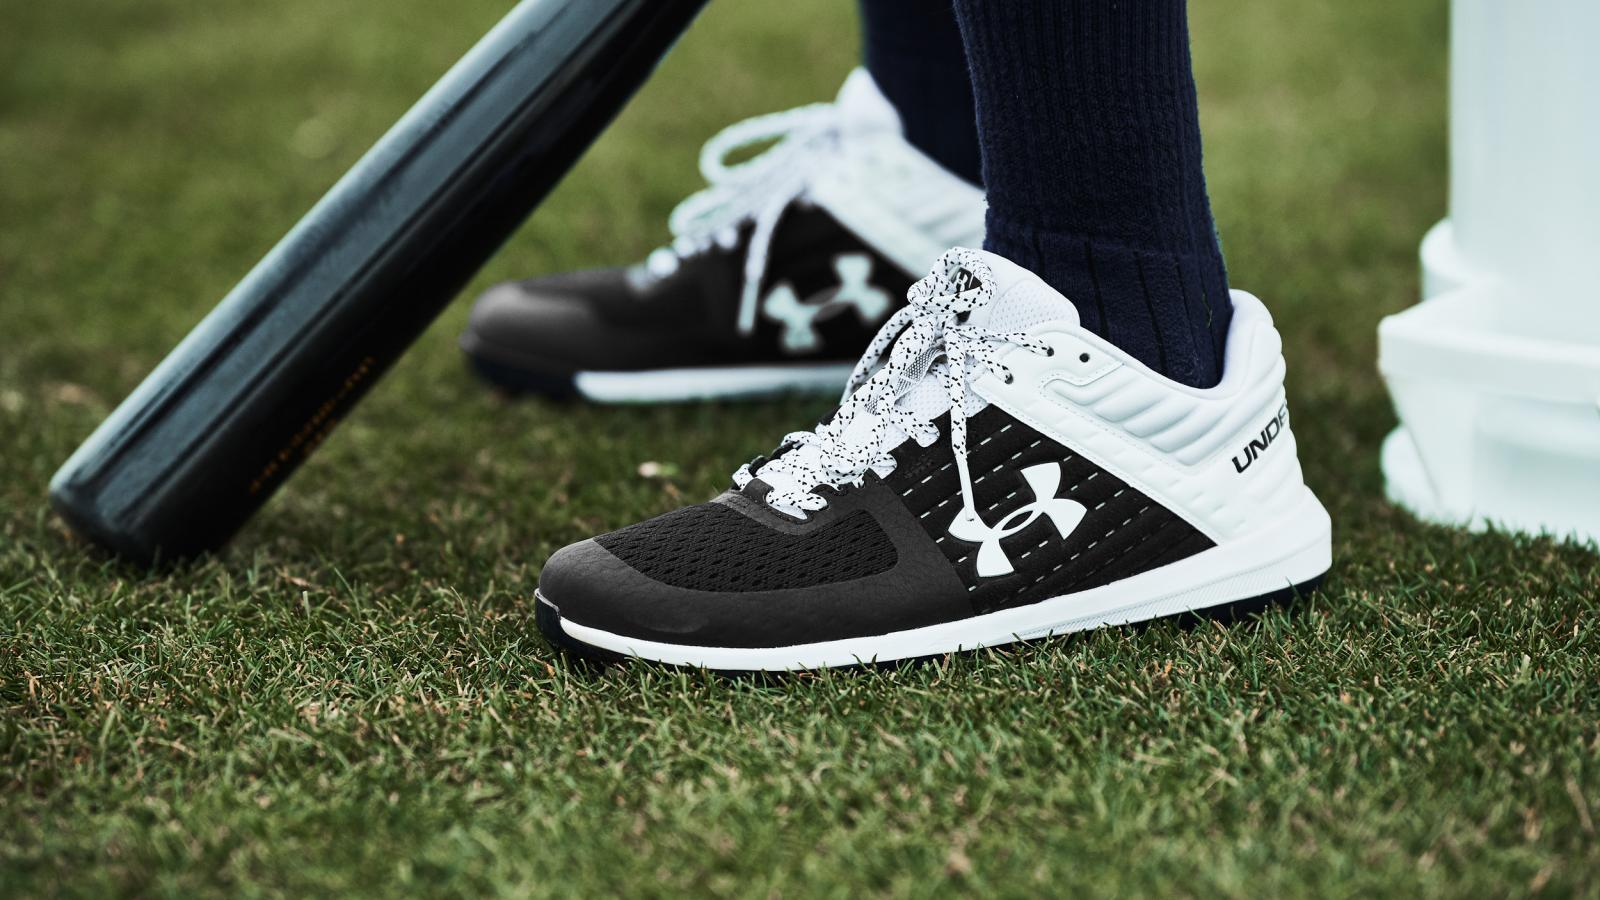 Under Armour Unleashes the UA Yard